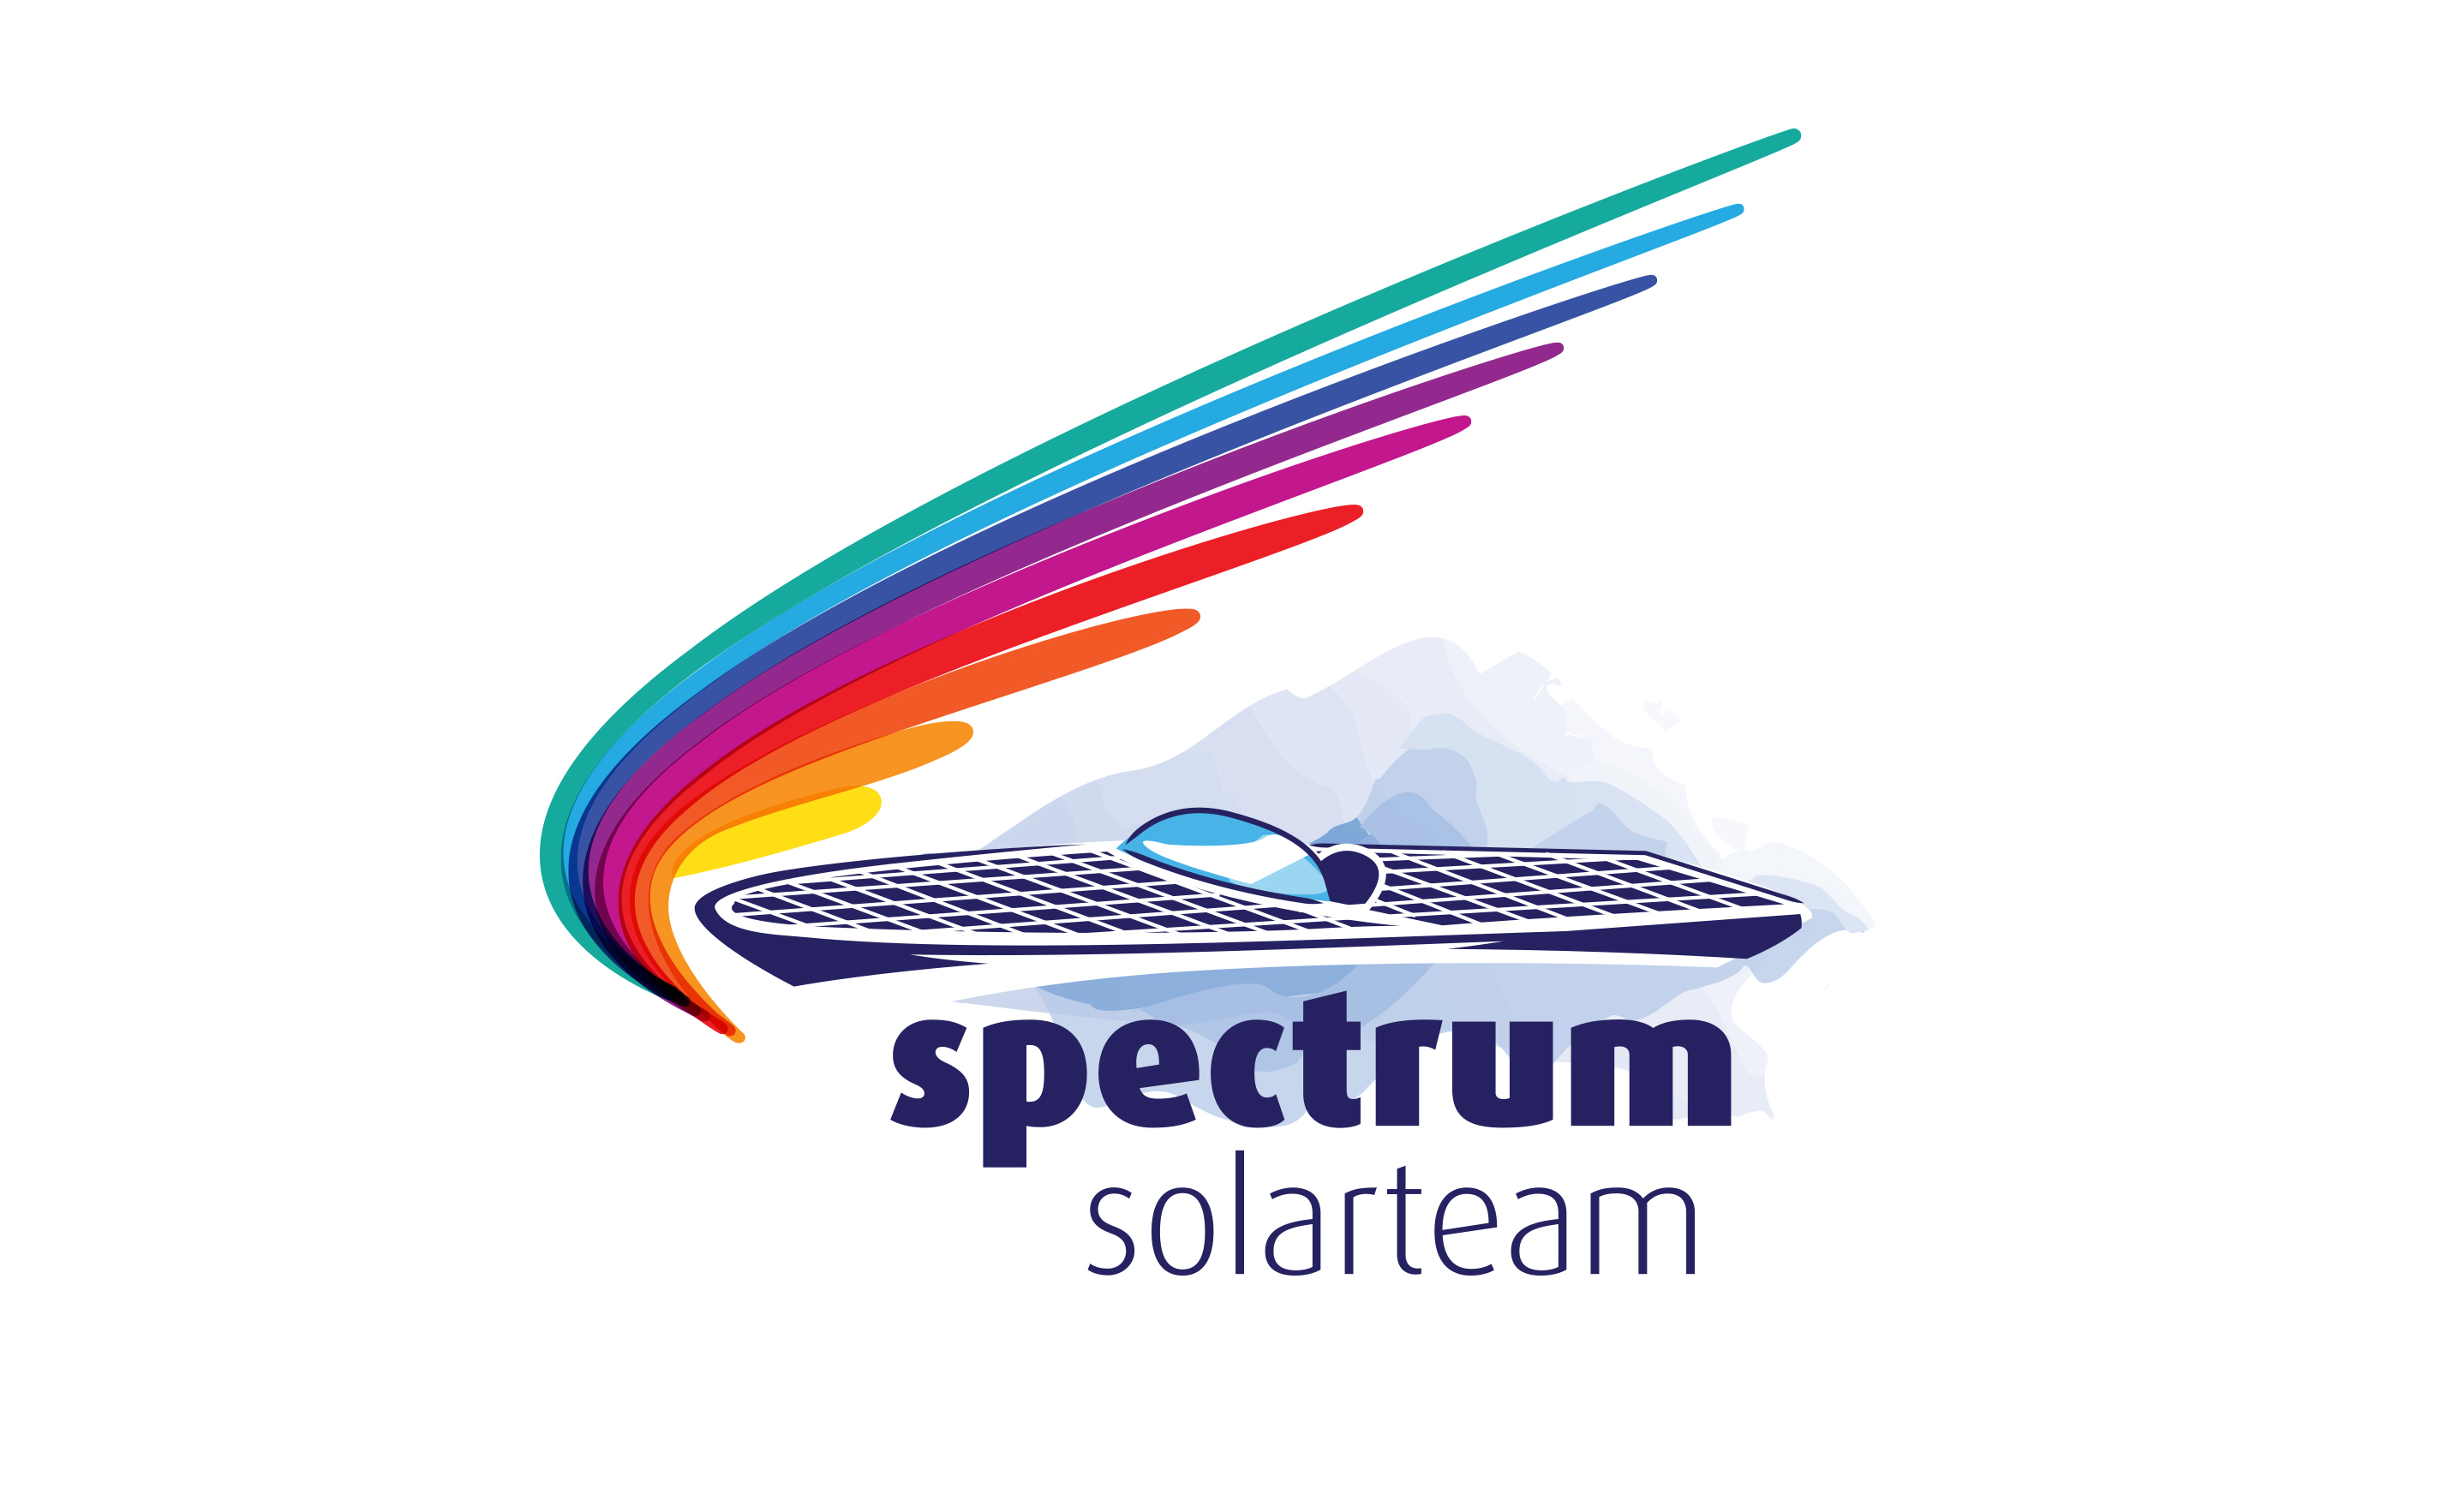 Spectrum Solarteam